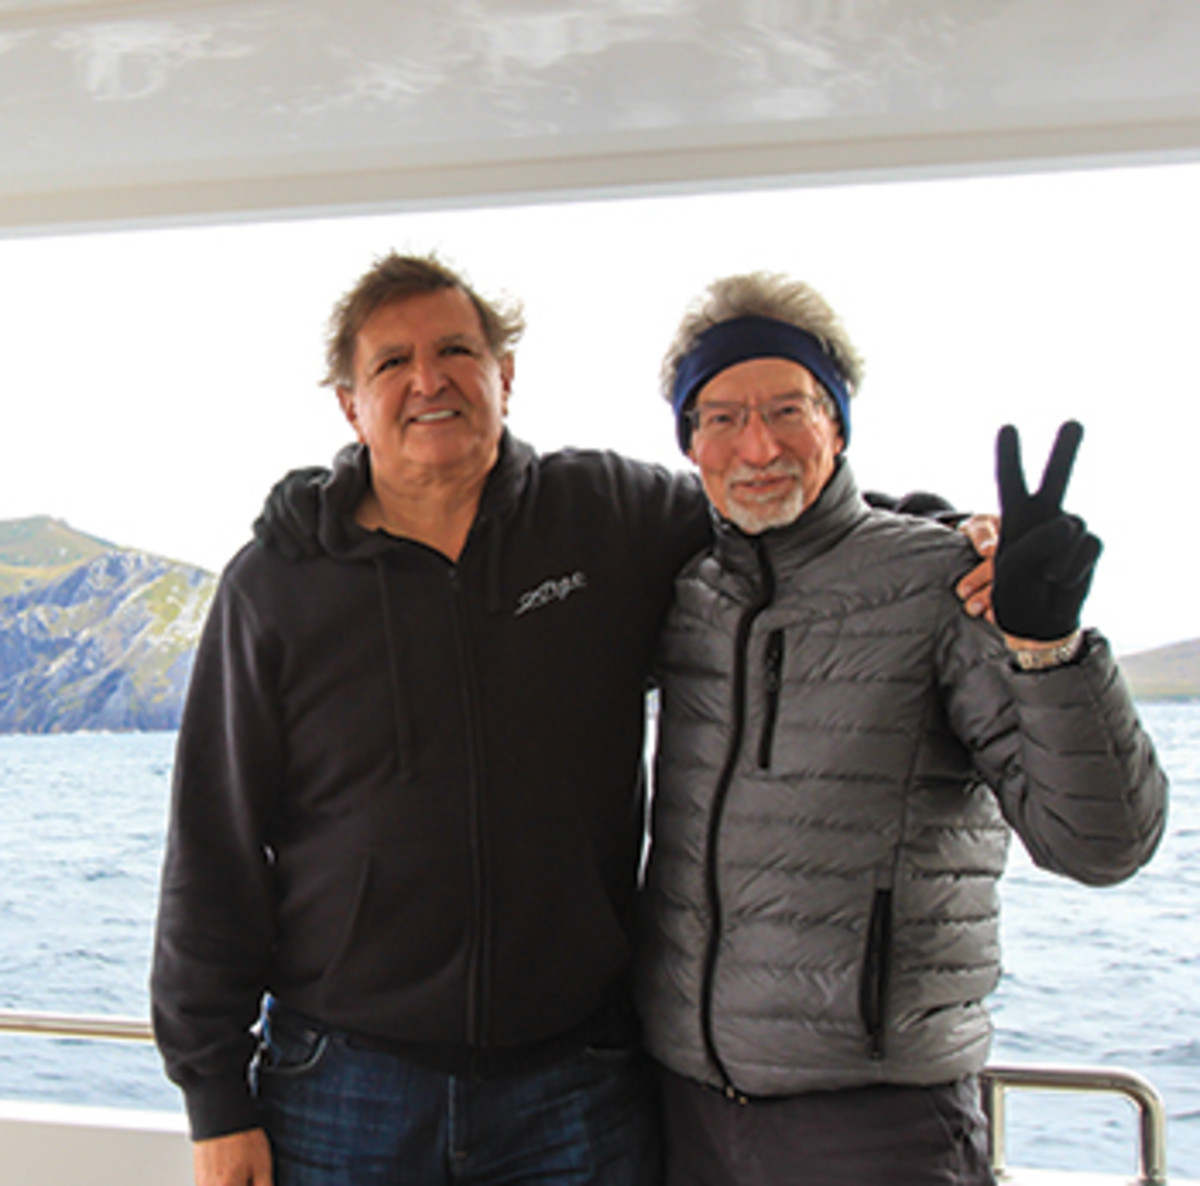 Argo's owner, Paul Hawran, left, and his brother-in-law, photographer Andrew Ulitsky, share a moment on their voyage around the Horn.